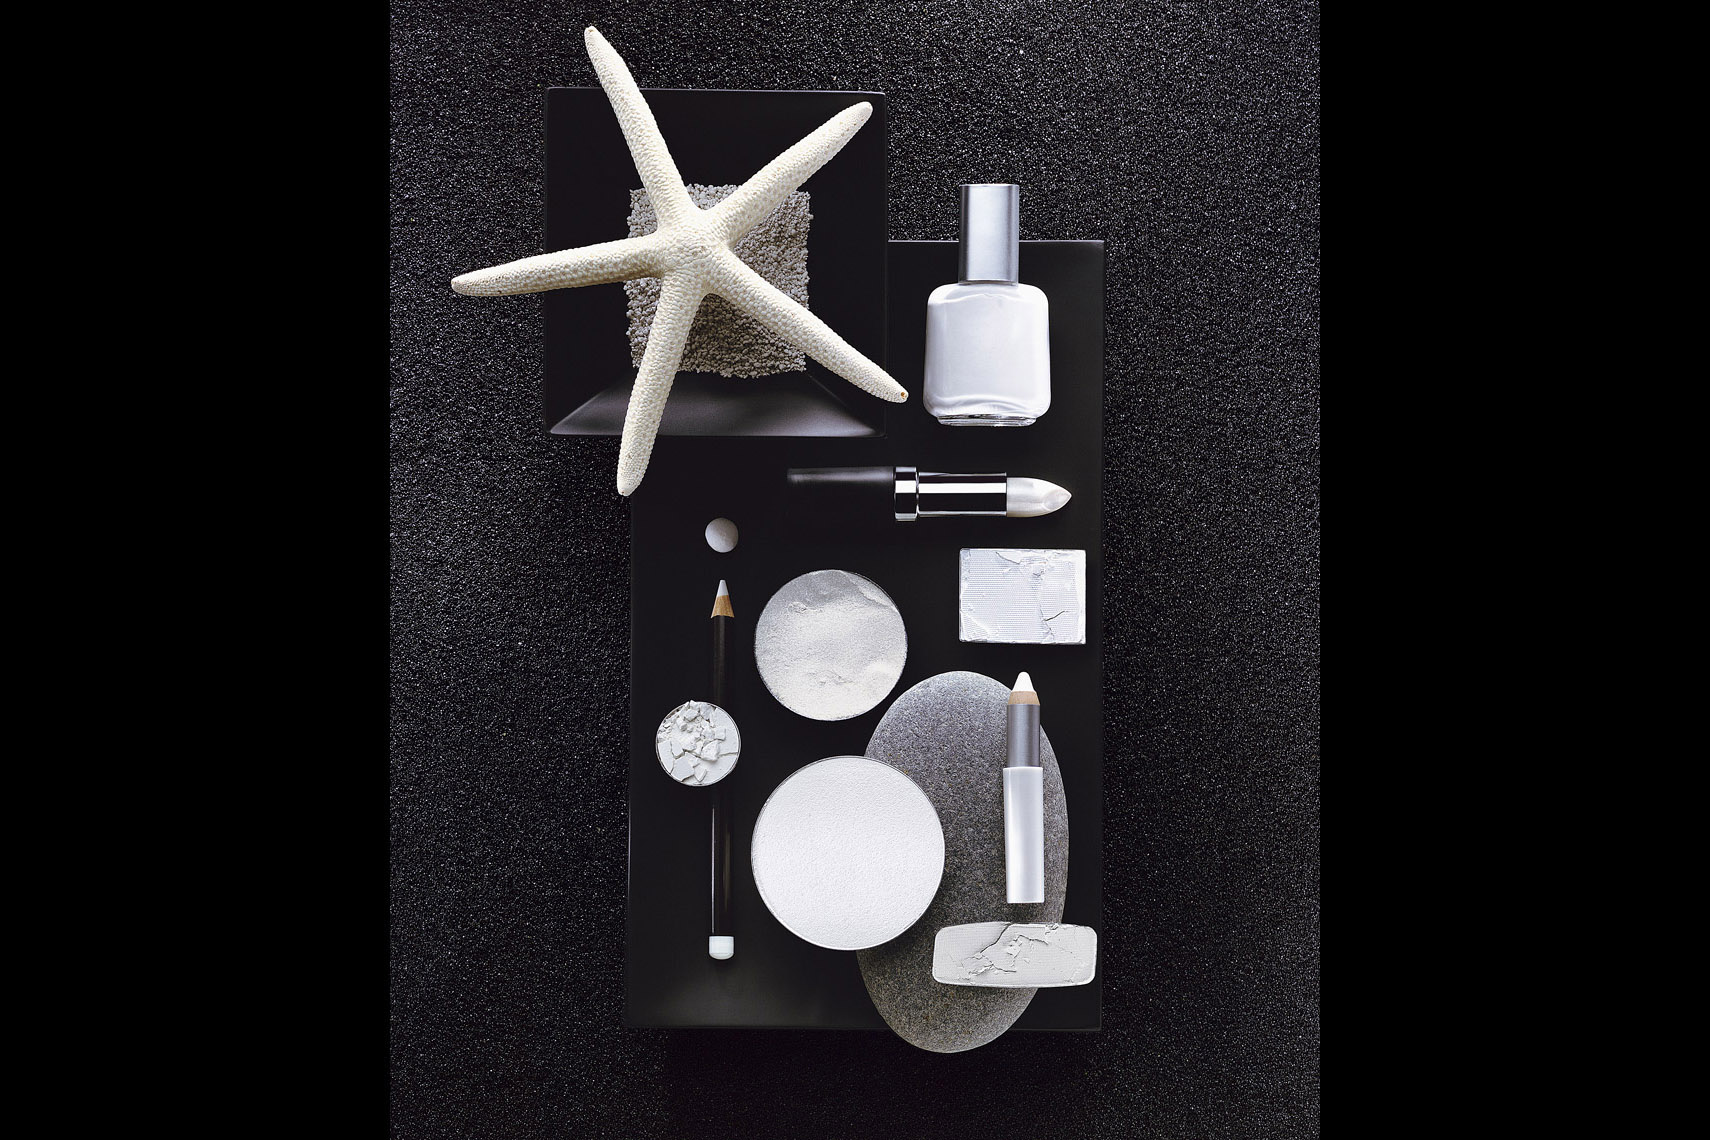 Cosmetics Still Life, White Makeup on Black Sand